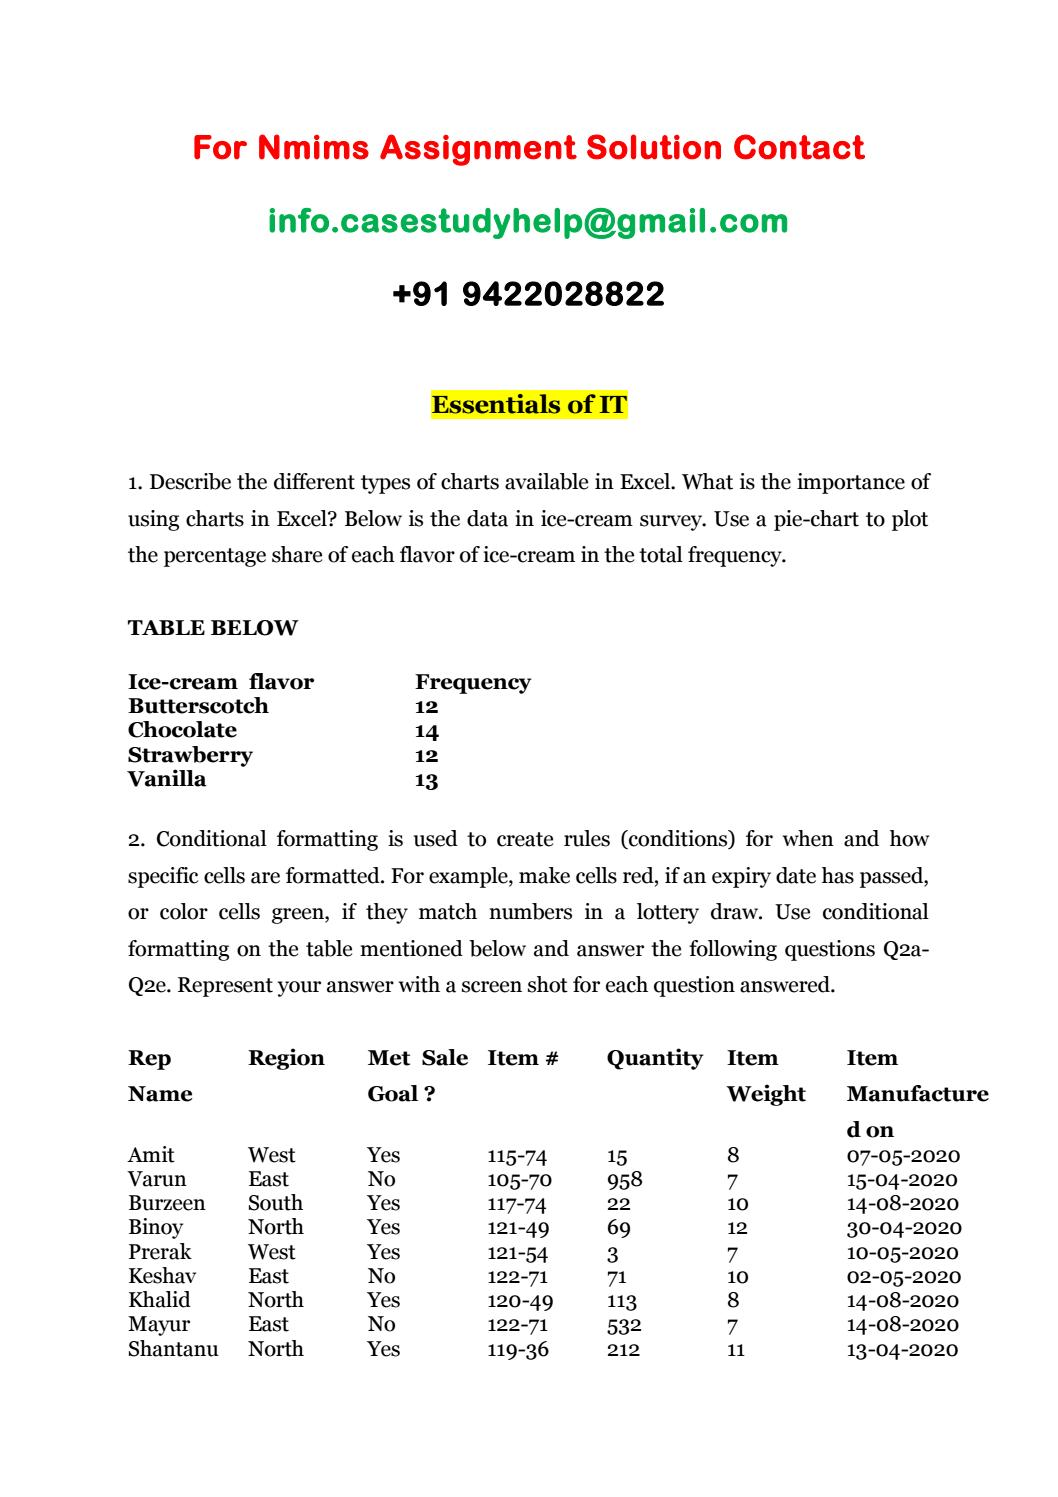 How To Add Percentages To Pie Chart In Excel : percentages, chart, excel, Narsee, Monjee, Assignments, Conditional, Formatting, Highlight, Sales.casestudyhelp, Issuu